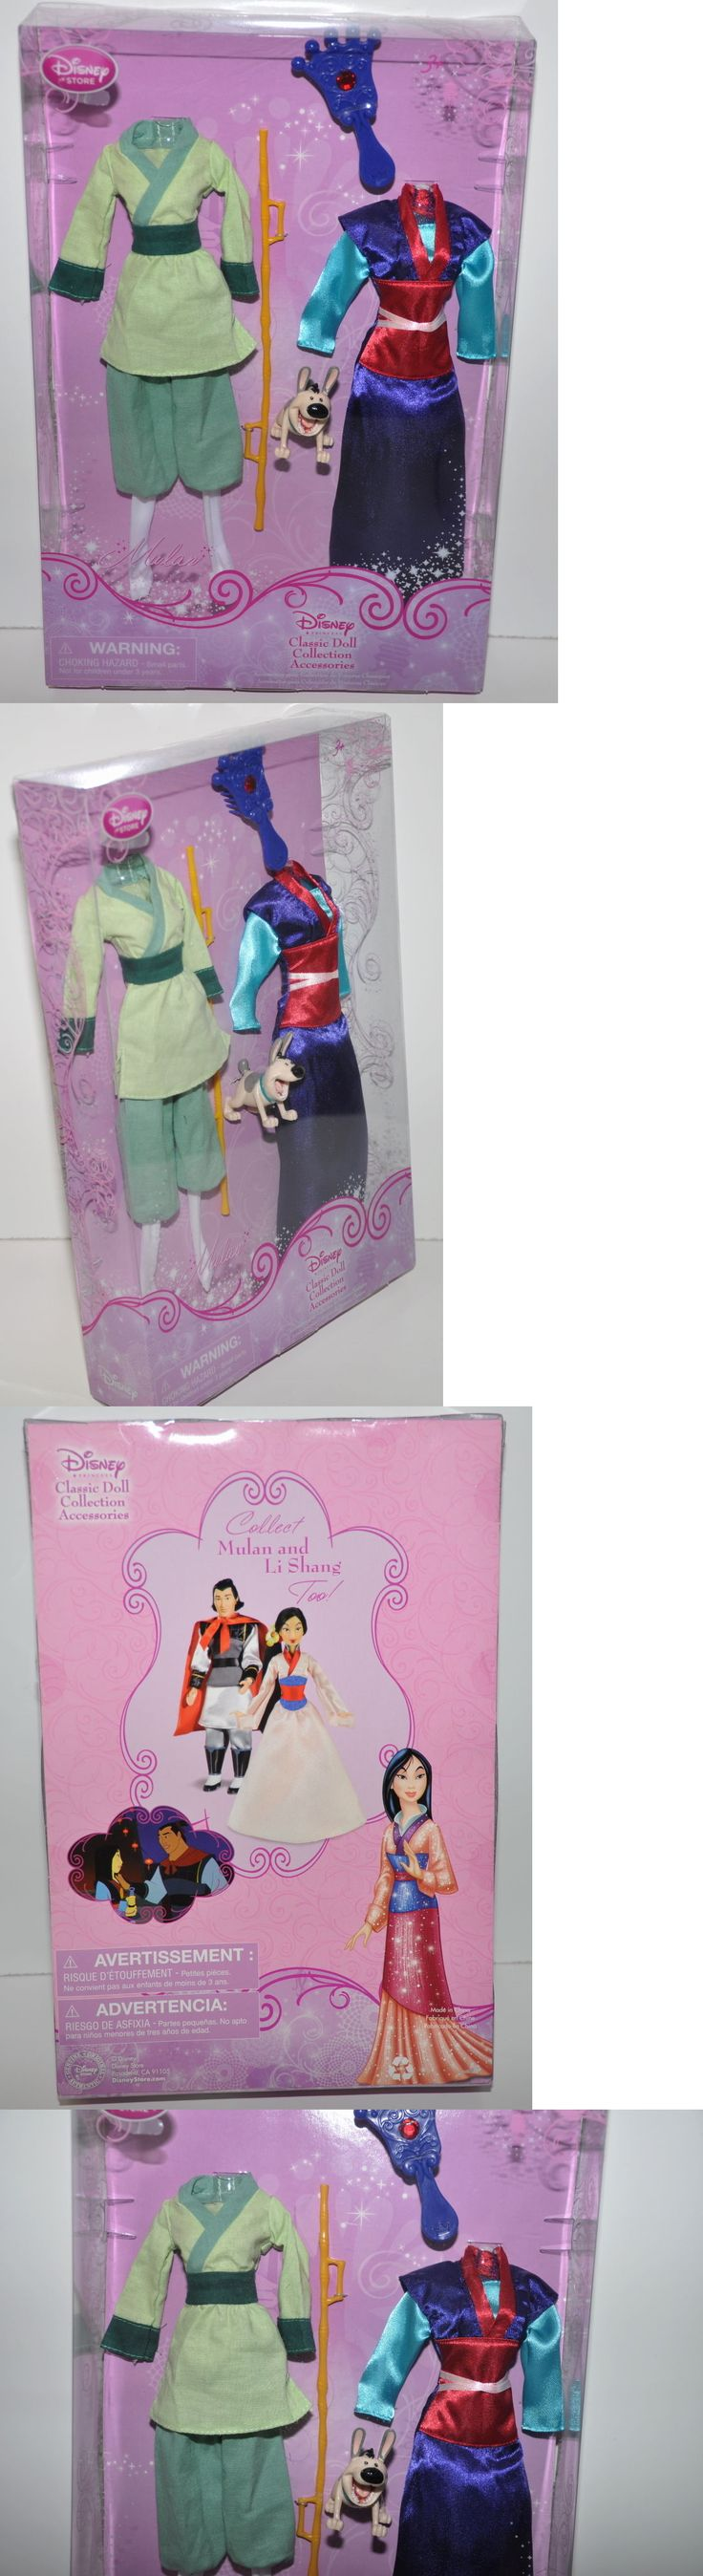 Disney Princesses 146030: Disney Store Classic Doll Collection Mulan Princess Wardrobe Clothes Mini Figure -> BUY IT NOW ONLY: $49.95 on eBay!